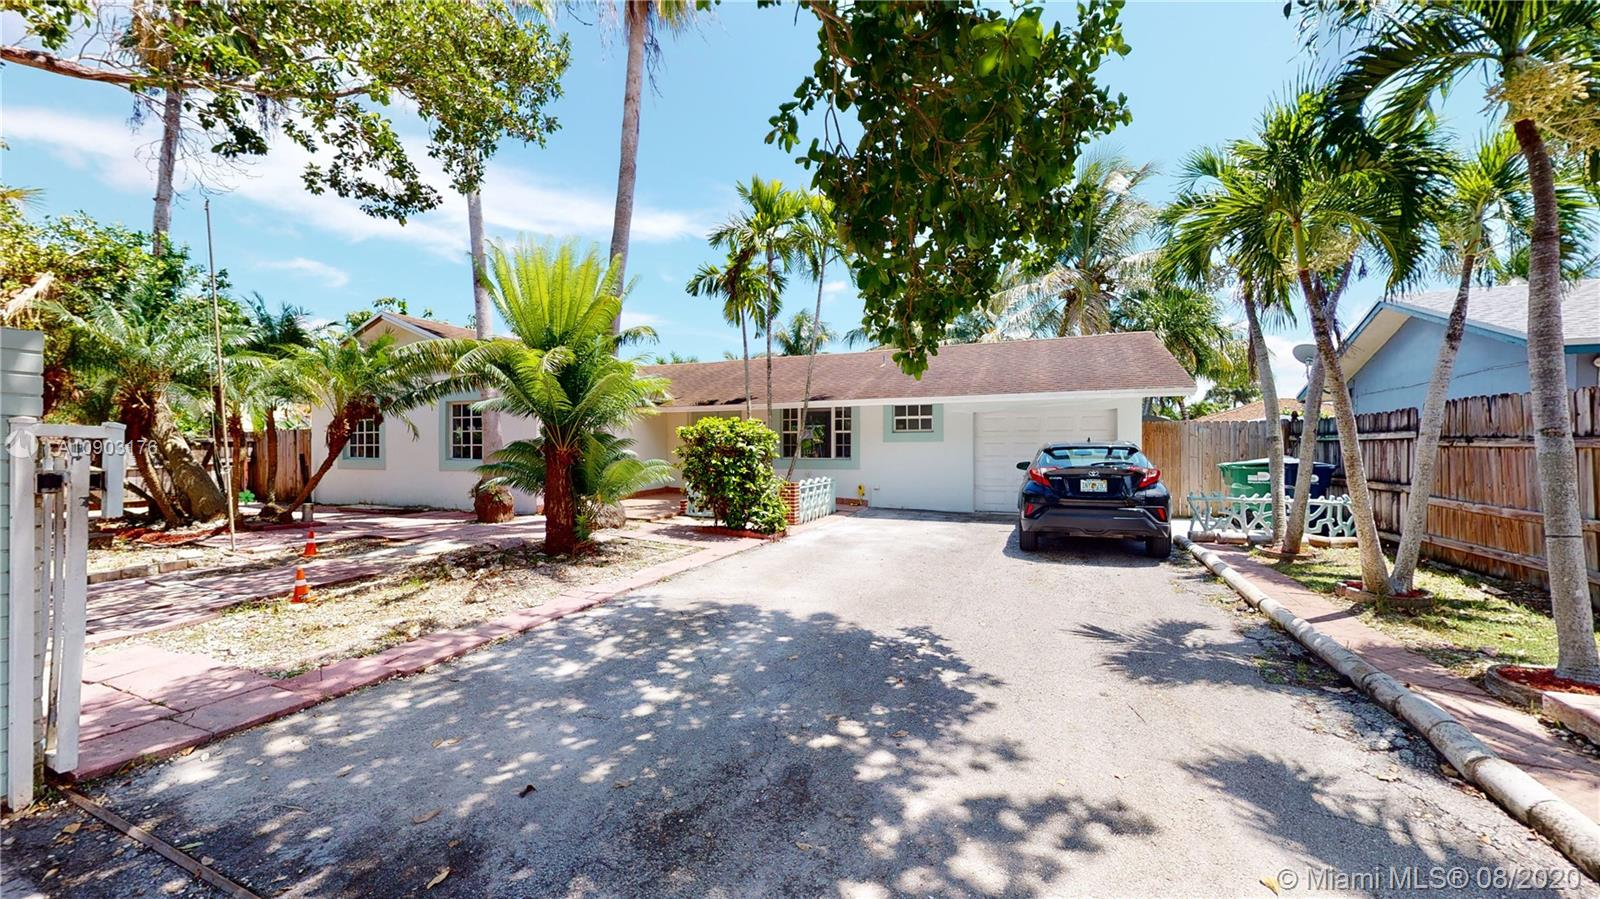 13452 SW 256th Ter Property Photo - Homestead, FL real estate listing